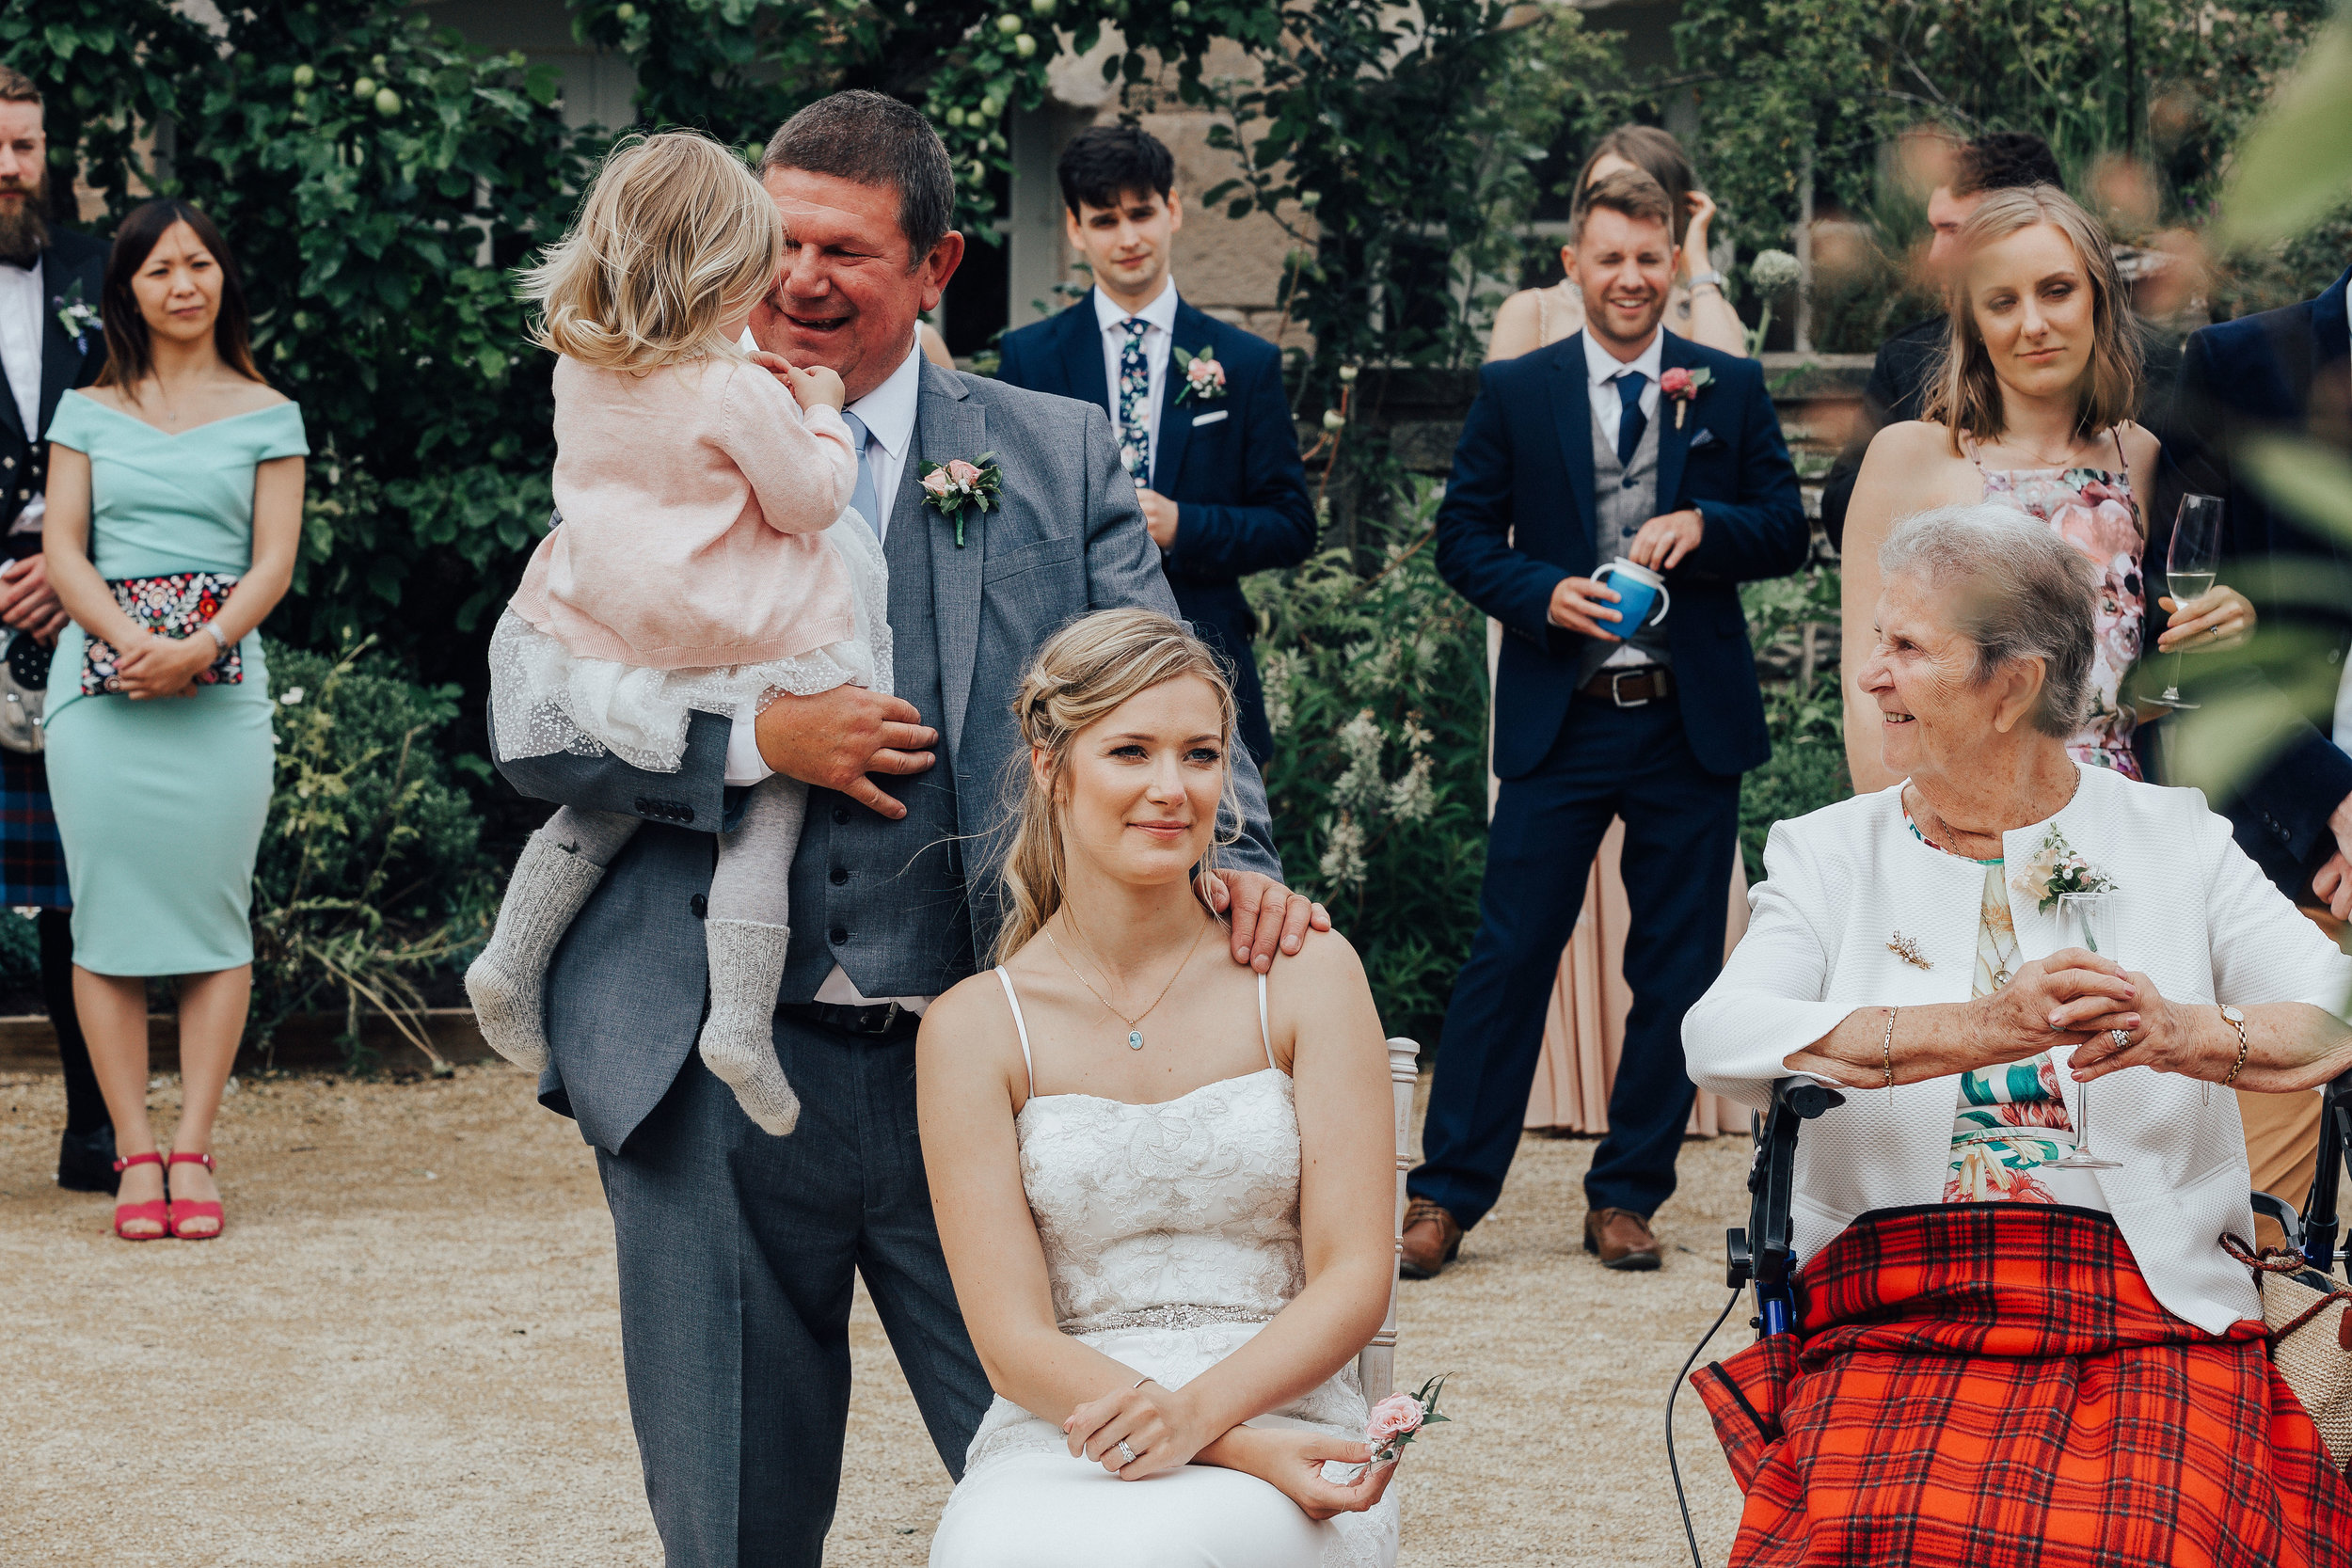 PJ_PHILLIPS_PHOTOGRAPHY_EDINBURGH_WEDDERBURN_BARNS_WEDDING_EDINBURGH_WEDDING_PHOTOGRAPHER_121.jpg